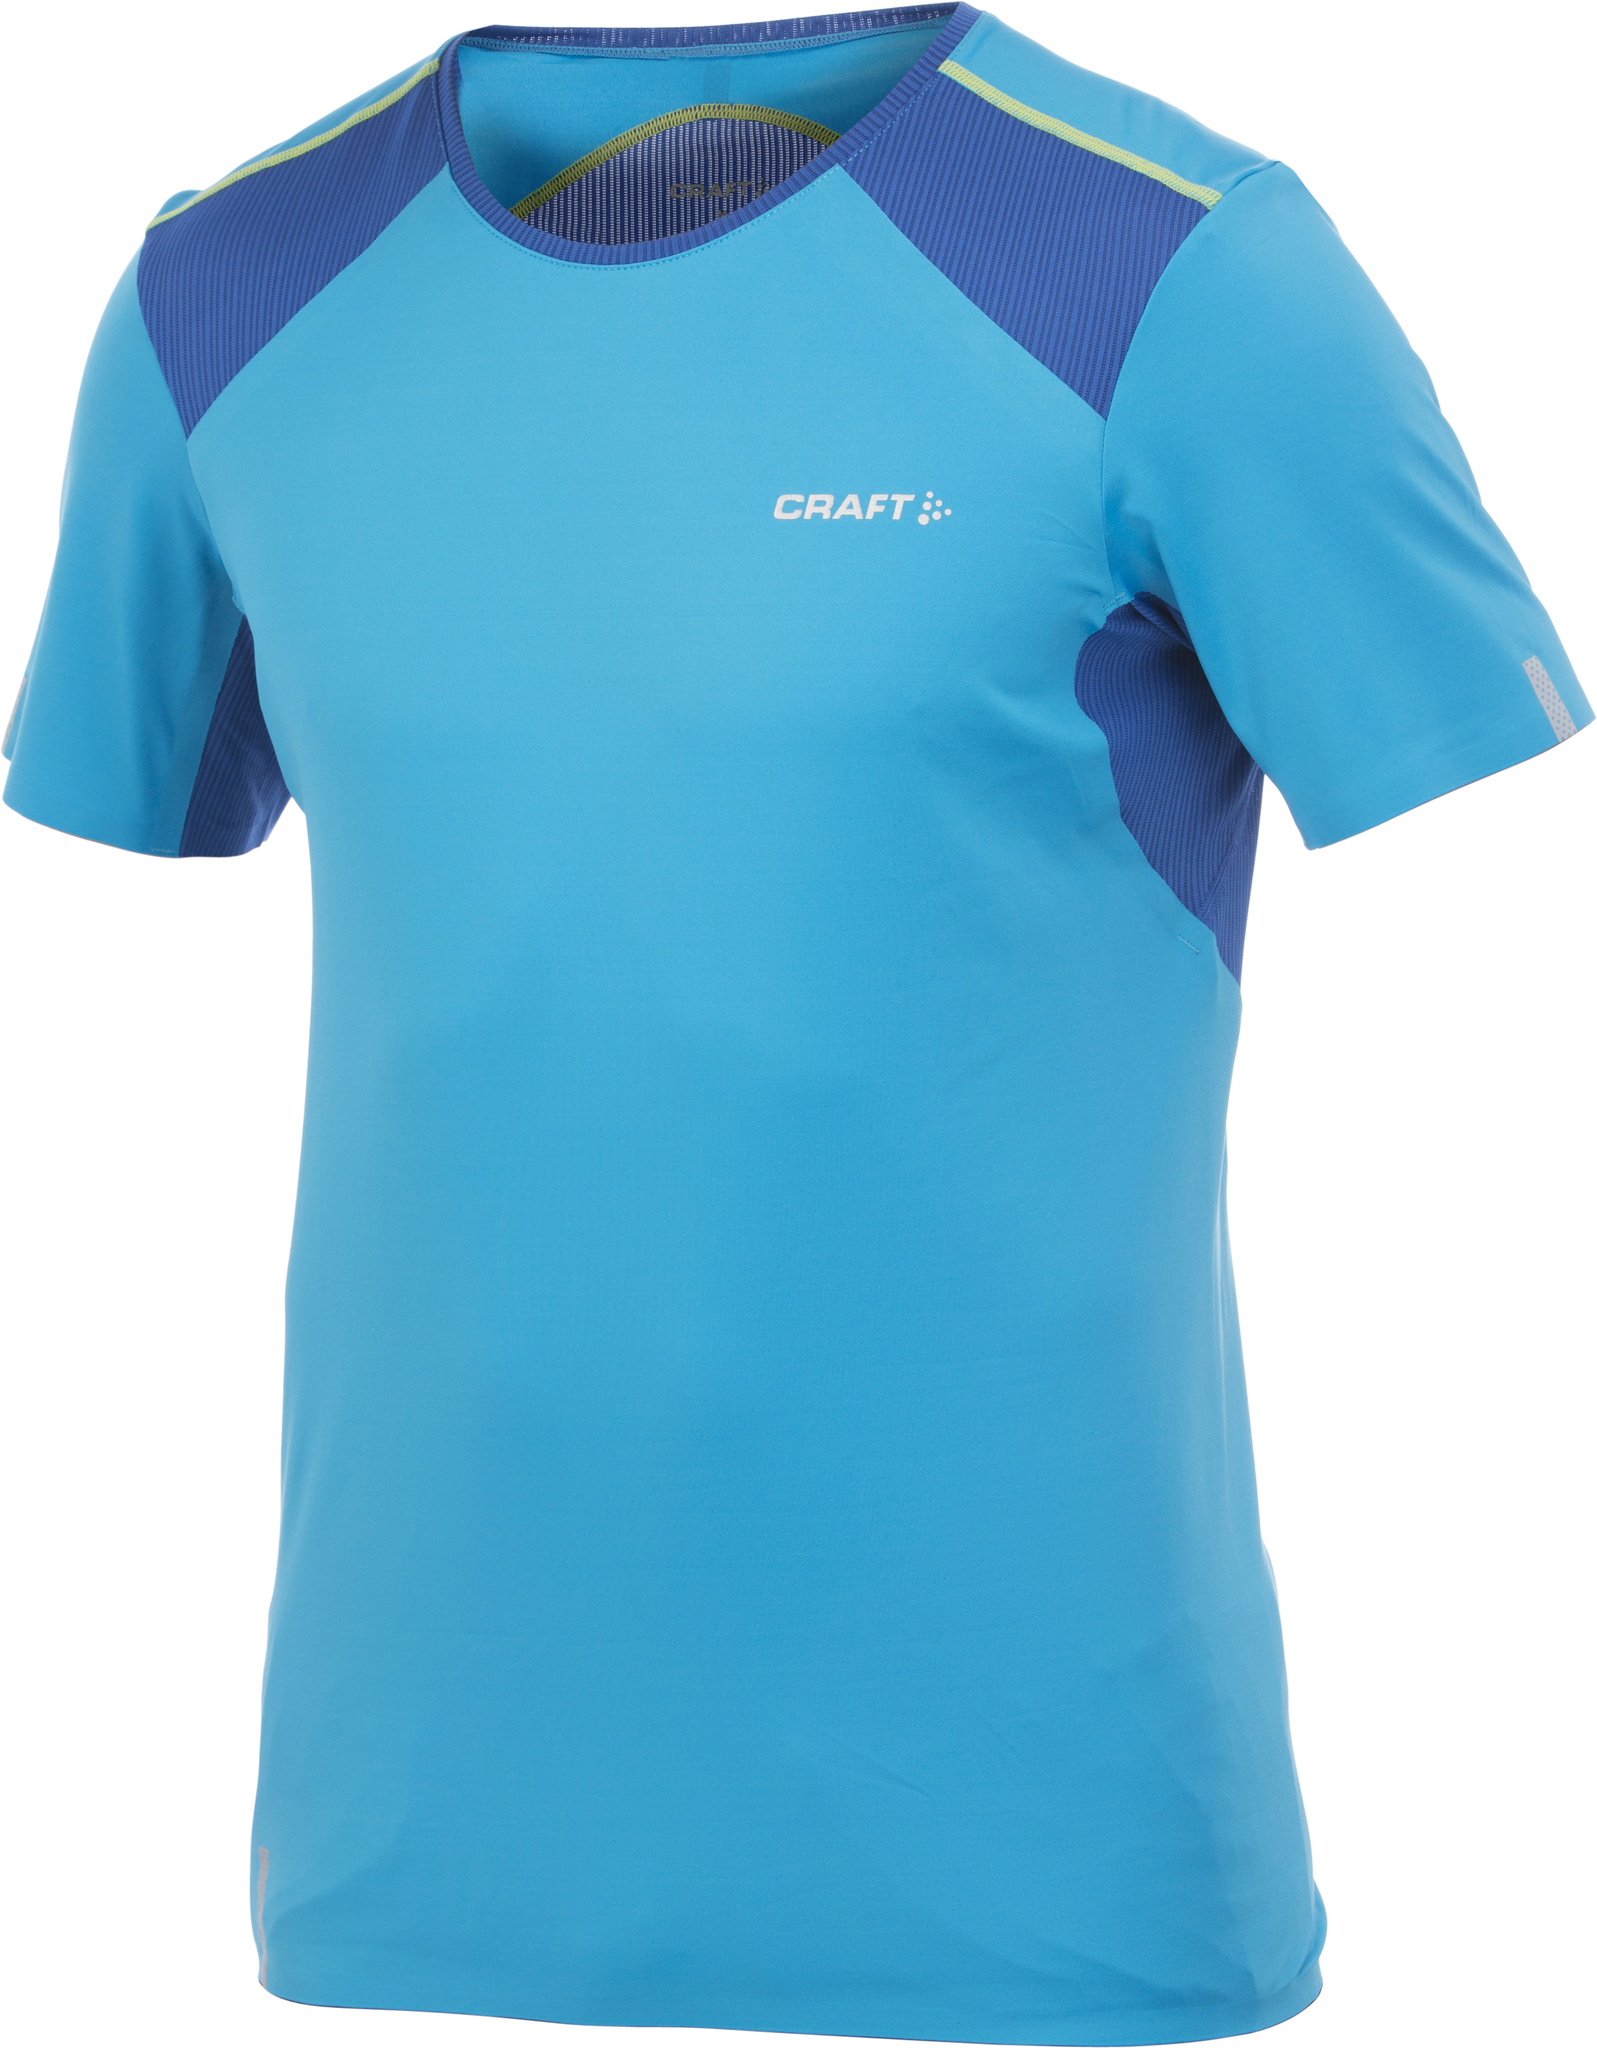 Футболка Craft ER V-Neck Blue мужская